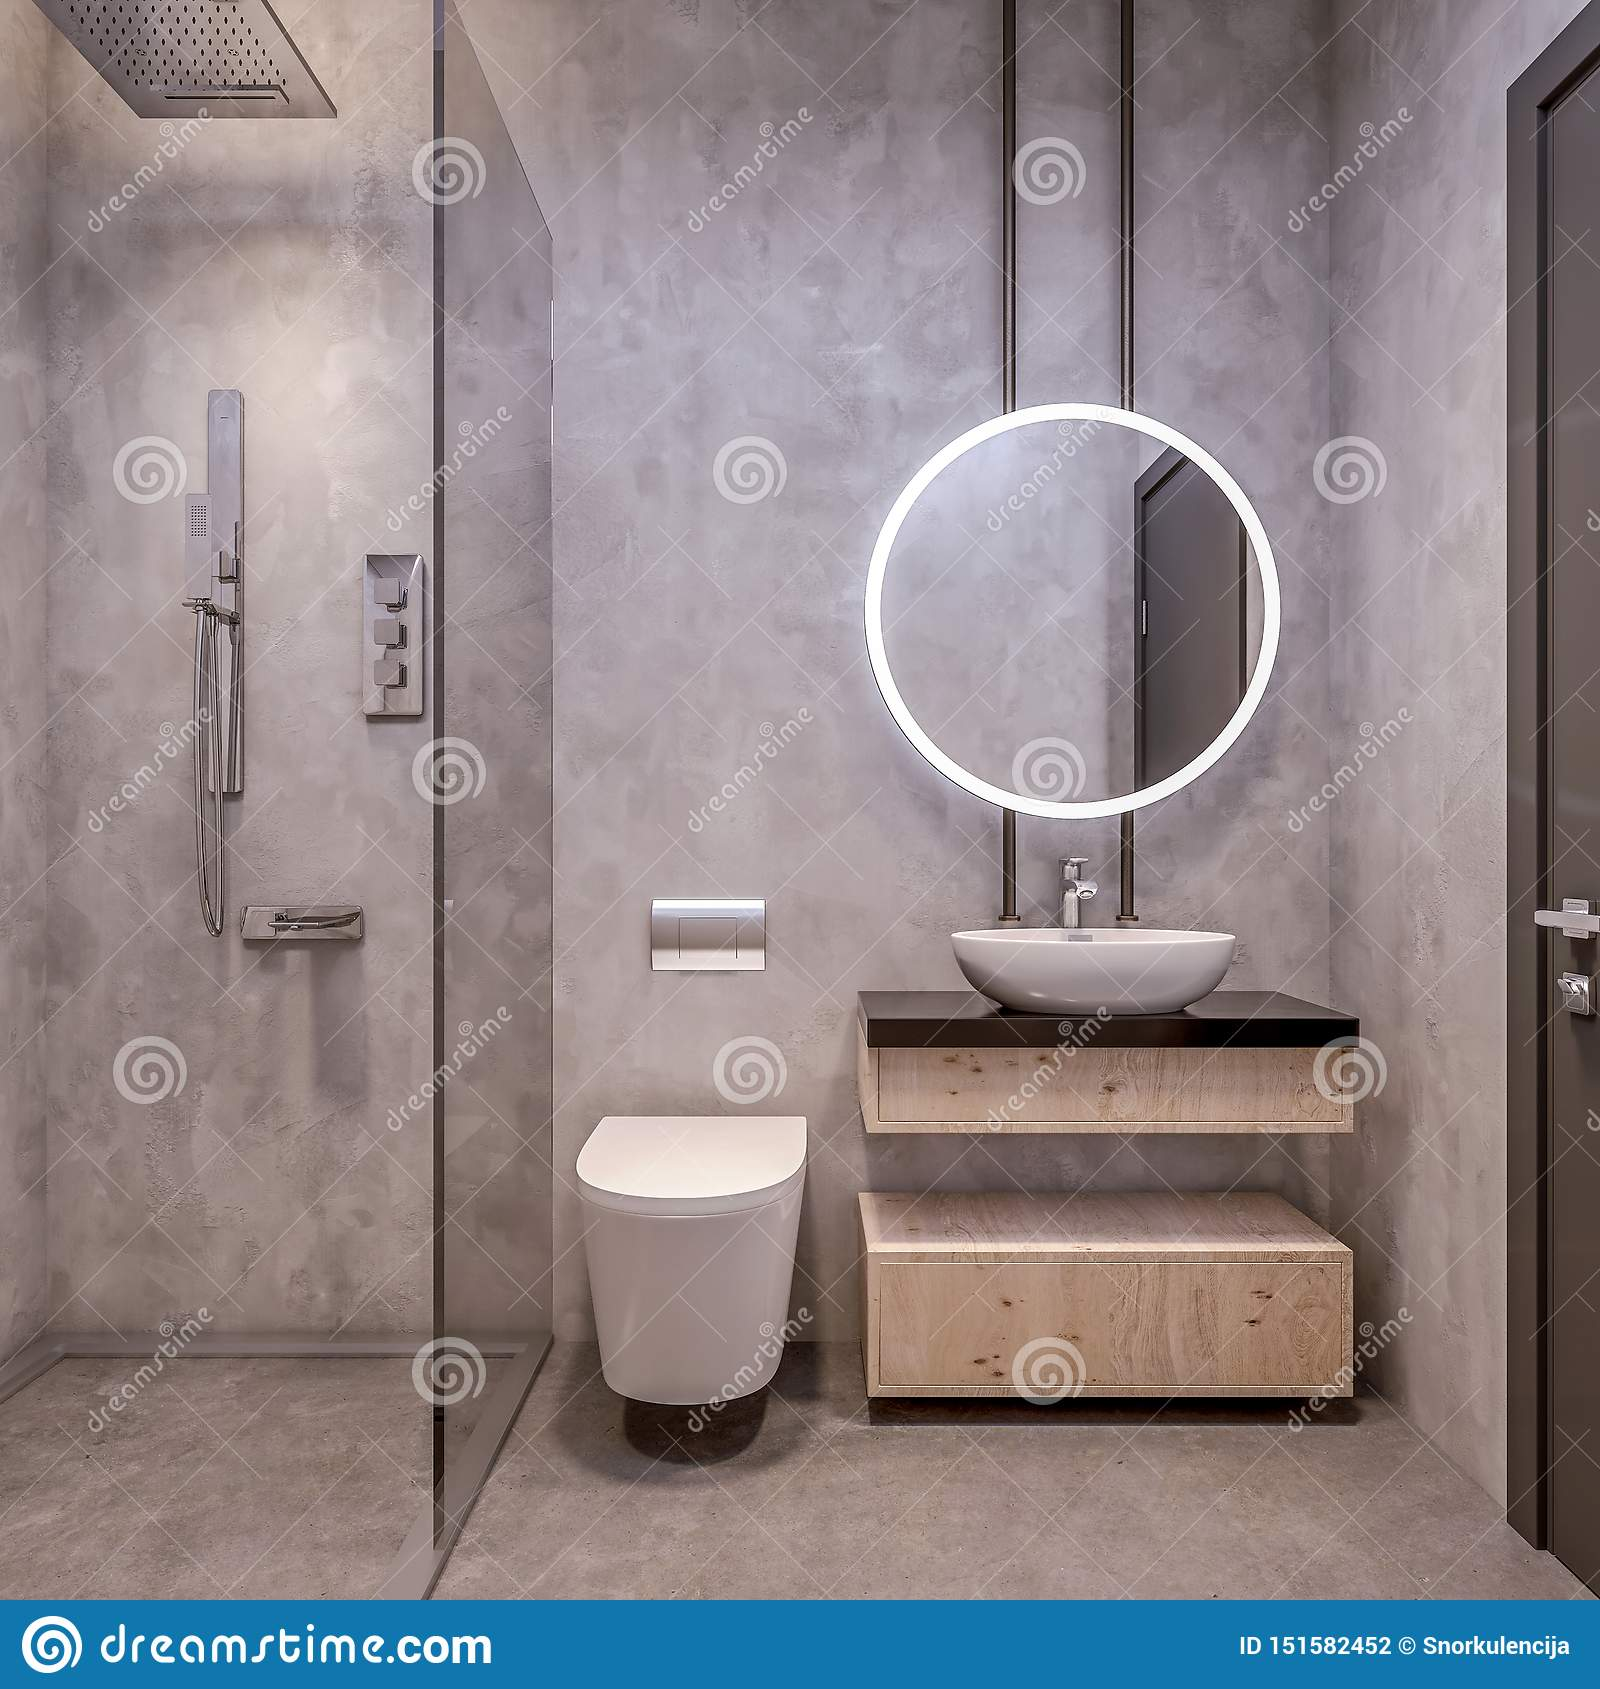 Modern Interior Design Of Bathroom Vanity All Walls Made Of Stone Slabs With Circle Mirrors Minimalist And Clean Stock Illustration Illustration Of Hotel Granite 151582452,Home Decorators Collectors